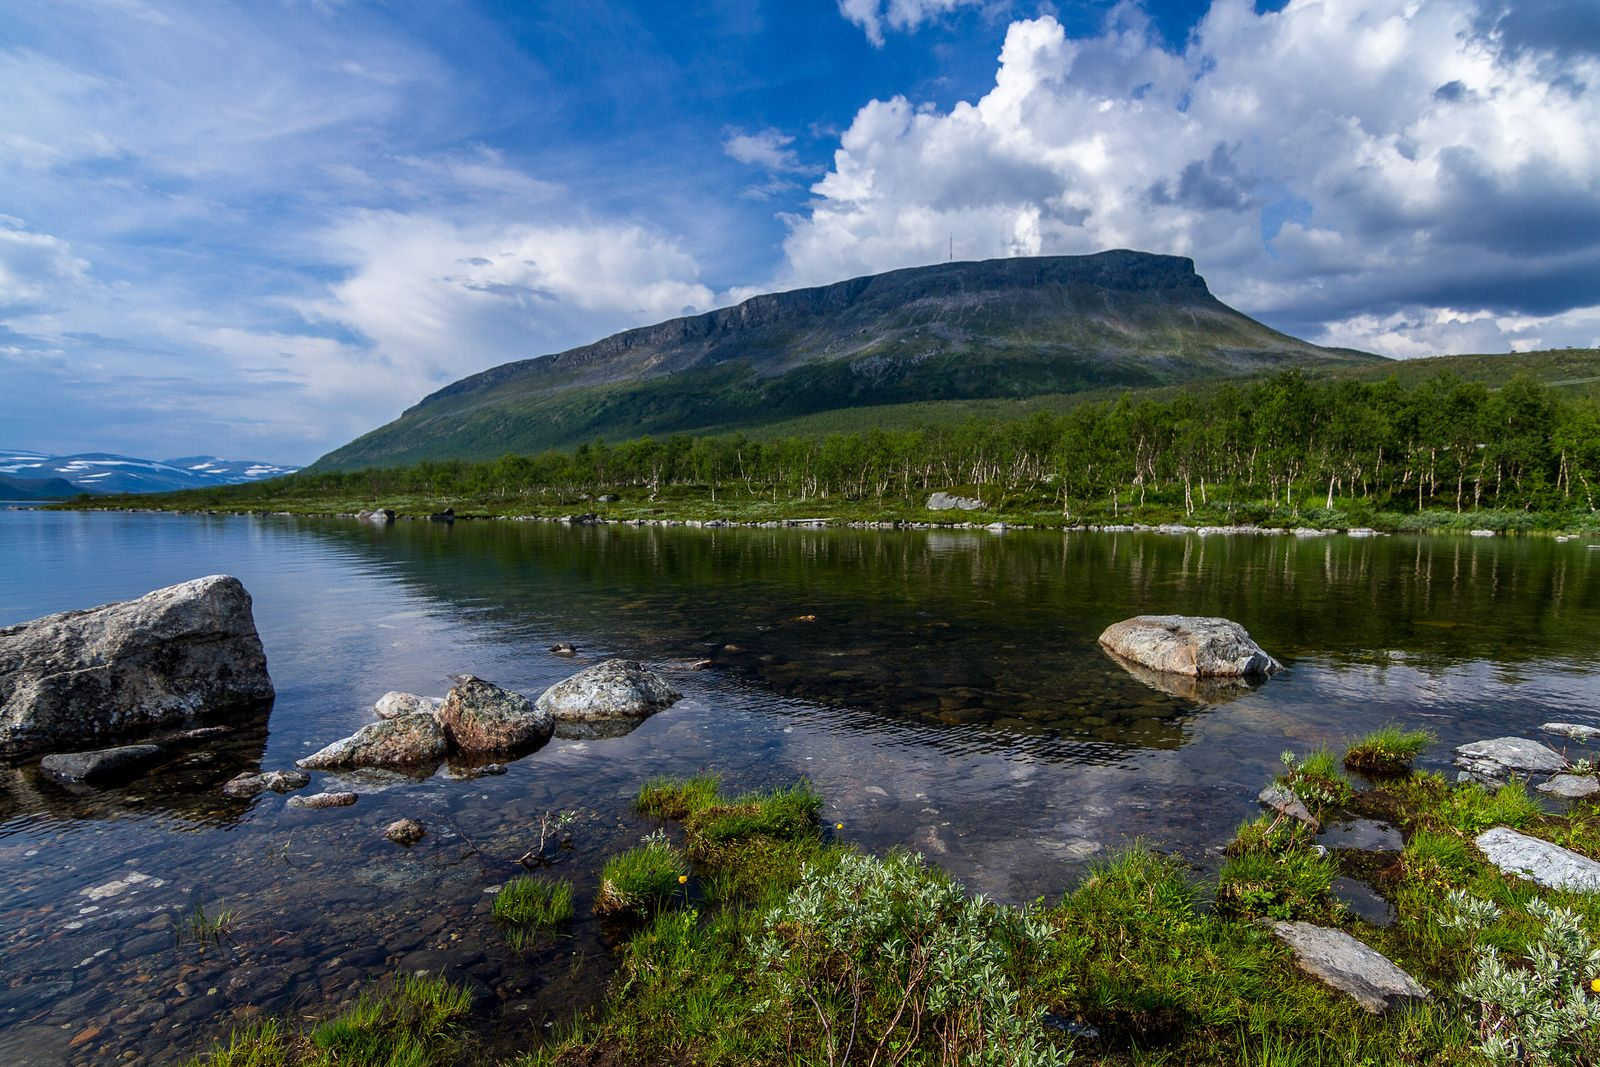 Photo by © Tuomo Lindfors Saana Fell, Finnish Lapland